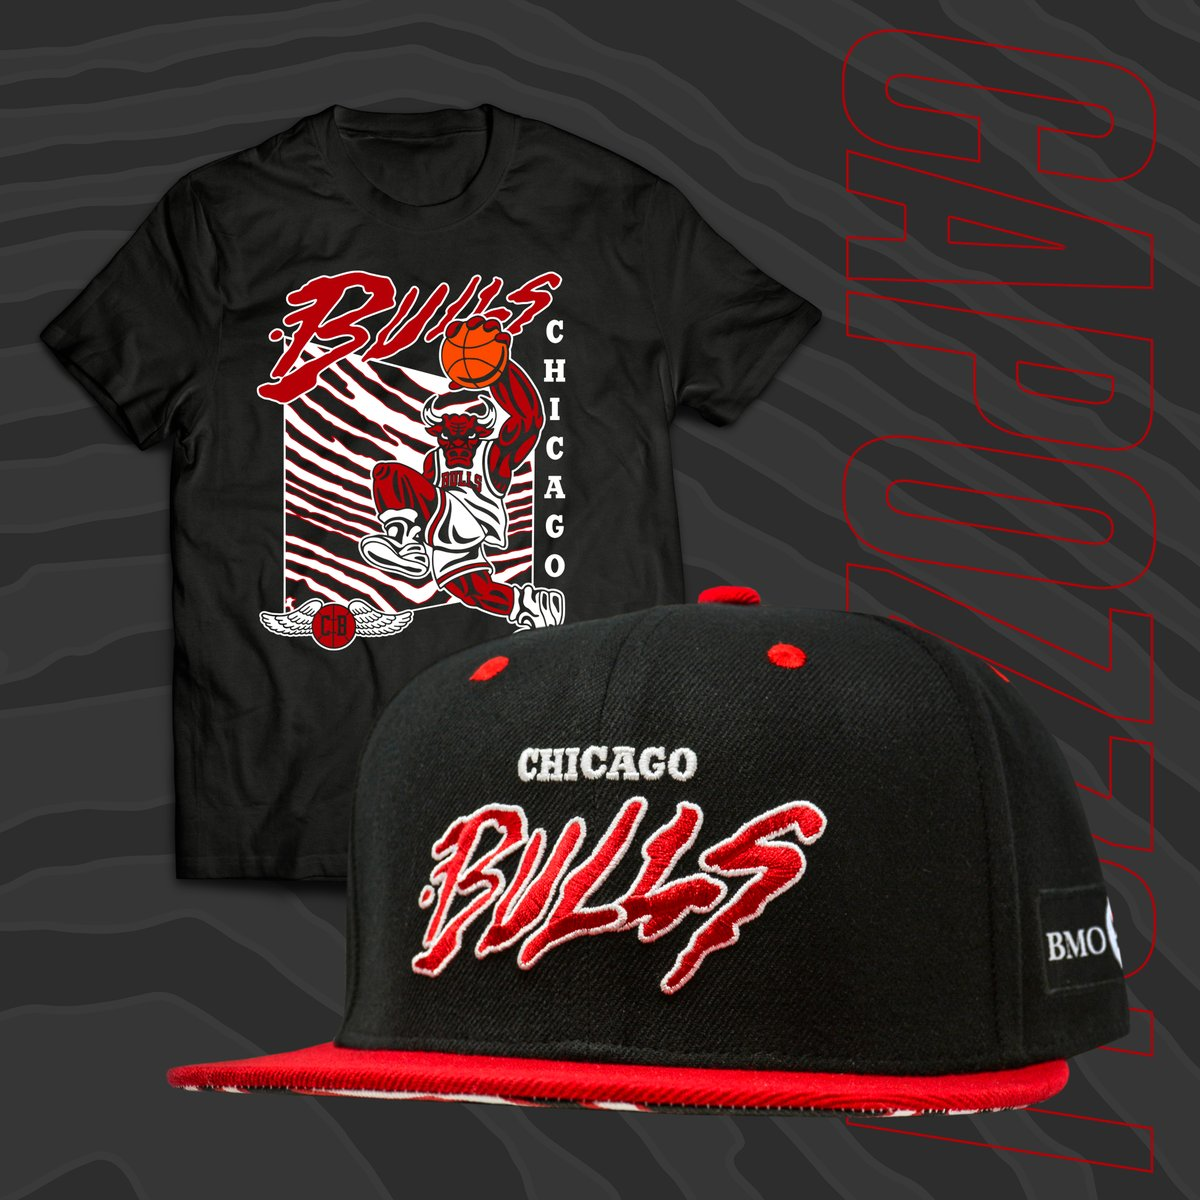 The first 🔥 @BMOHarrisBank hat series giveaway for those attending tonight's game!   This hat was designed by Chicago-based artist Louie Capozzoli (http://instagram.com/louiecapozzoli/).  More about the artist and upcoming hat giveaways: https://on.nba.com/2Ylw3yj